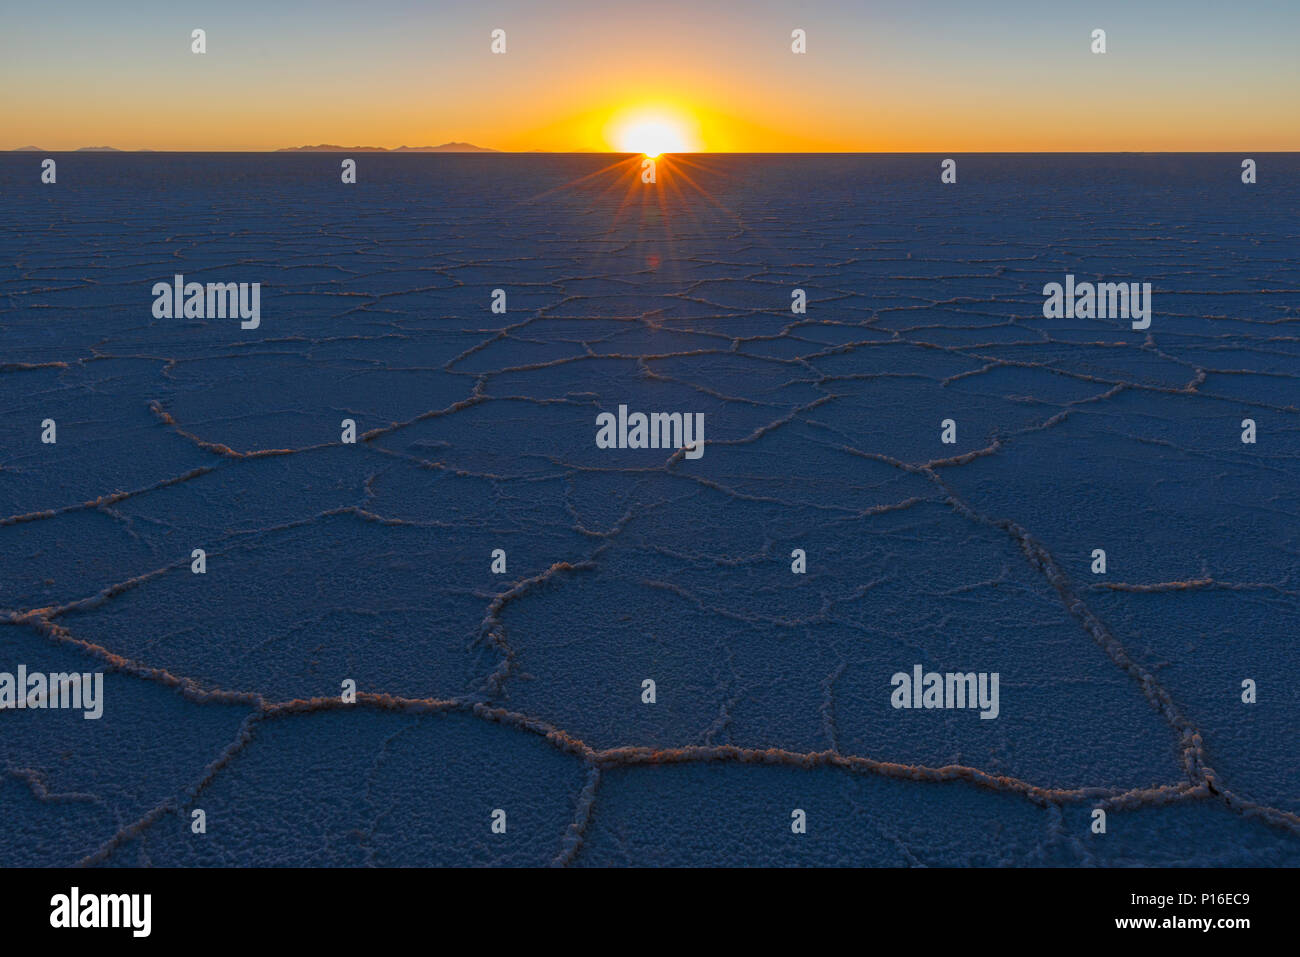 The last sun rays shining on the desert of salt in the Uyuni salt flat at sunset in the Bolivian altiplano (Salar de Uyuni), Bolivia, South America. - Stock Image